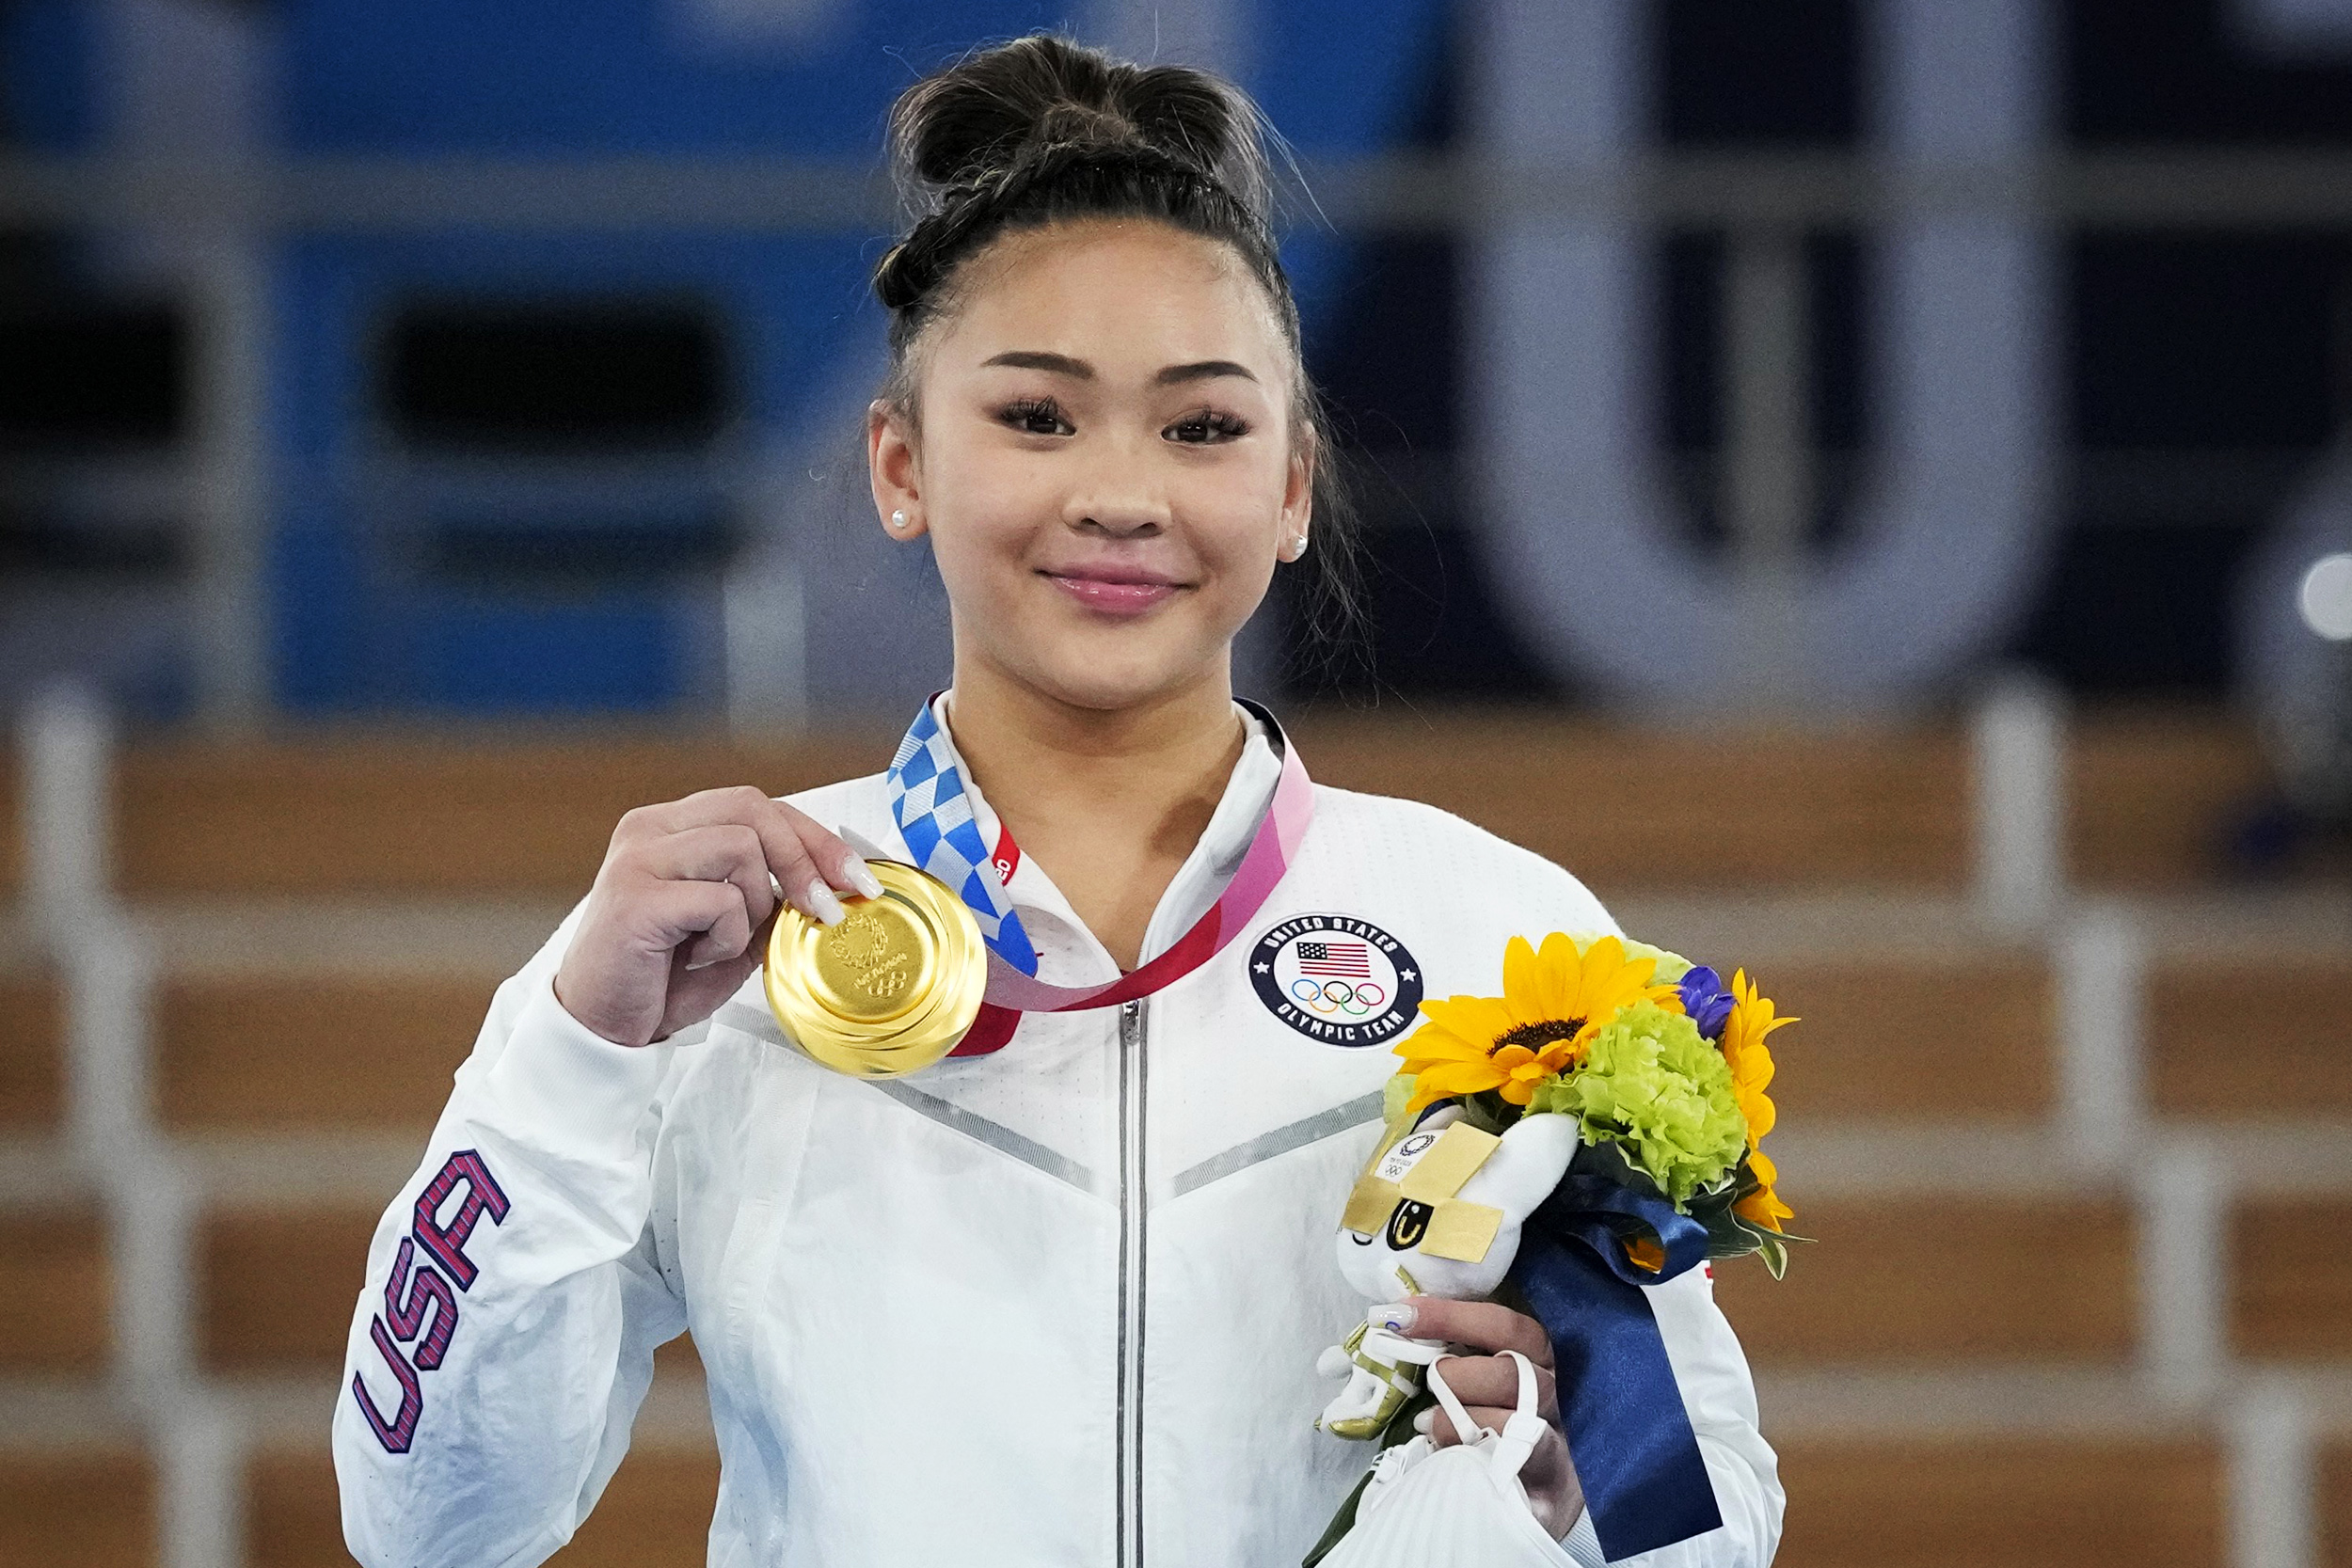 USA's Suni Lee wins gold in the women's individual all-around gymnastics final